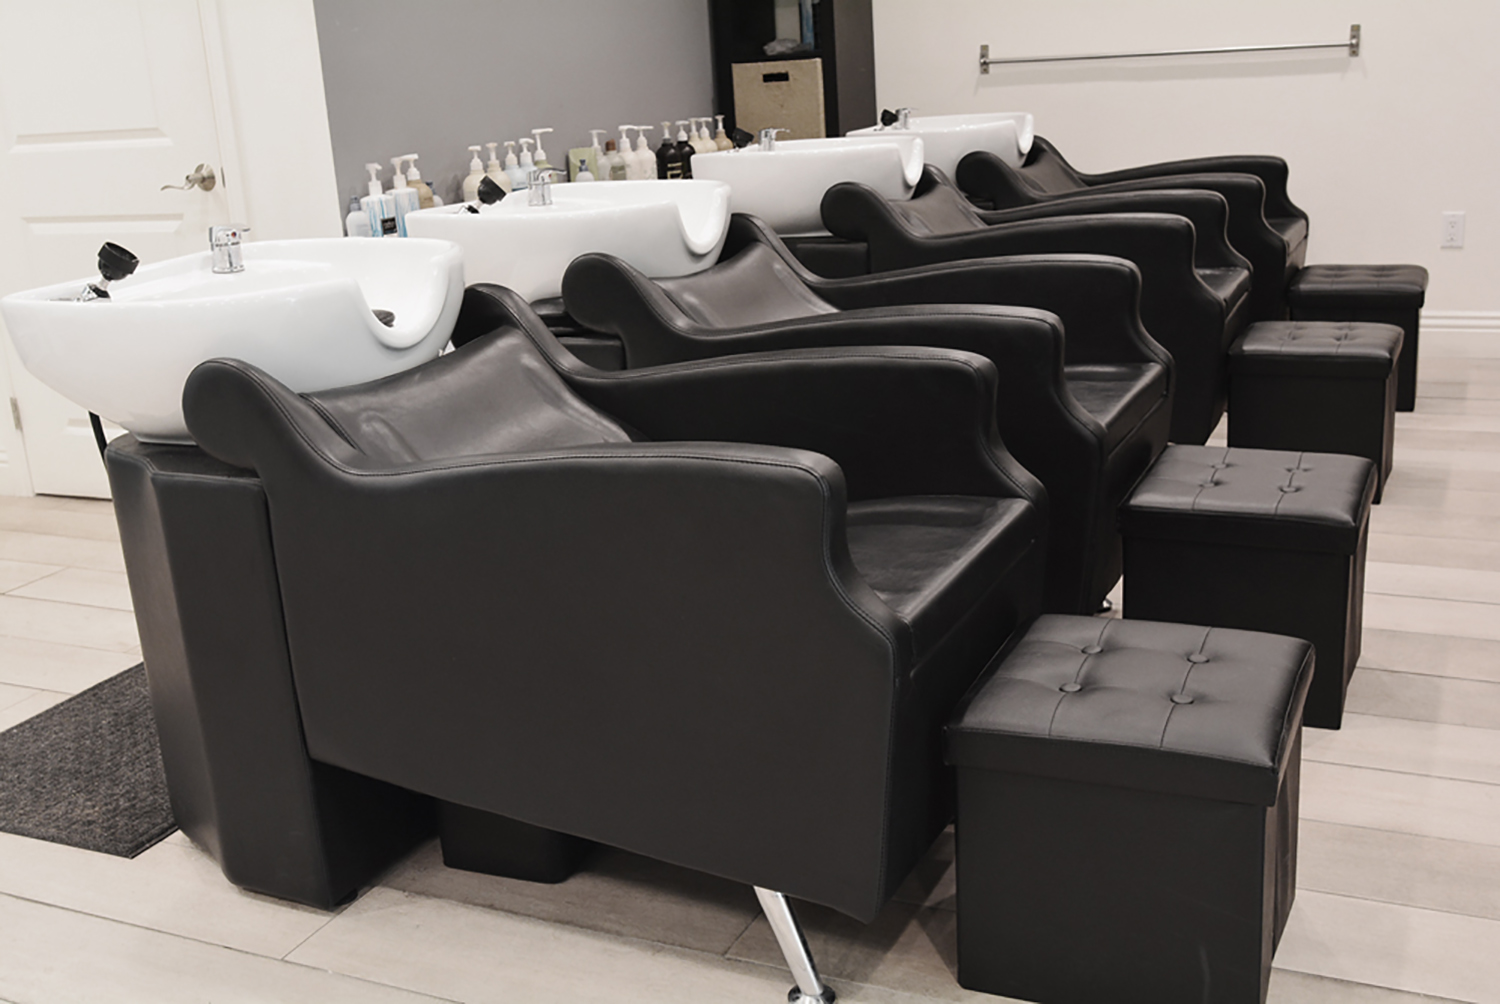 The two-story salon includes a VIP room, facial services, nail services, and more.